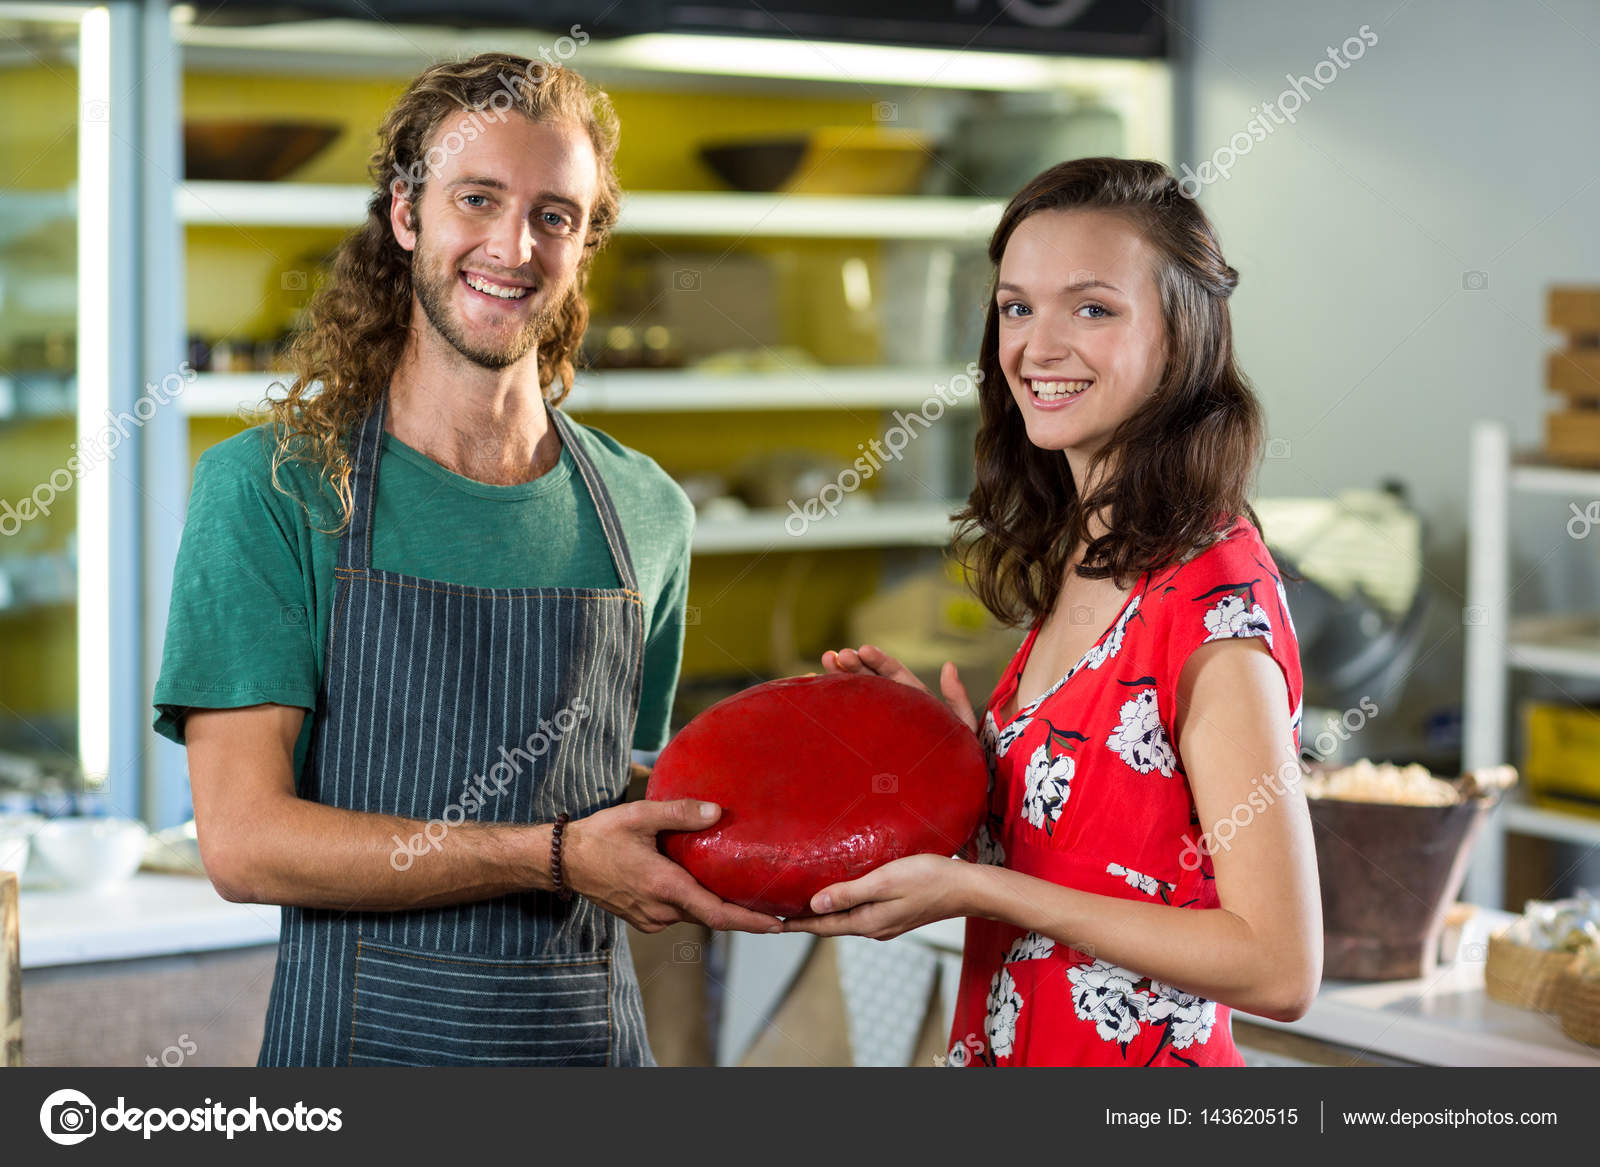 Portrait of salesman and costumer holding gouda cheese at counter u2014 Stock Photo  sc 1 st  Depositphotos & Portrait of salesman and costumer holding gouda cheese at counter ...